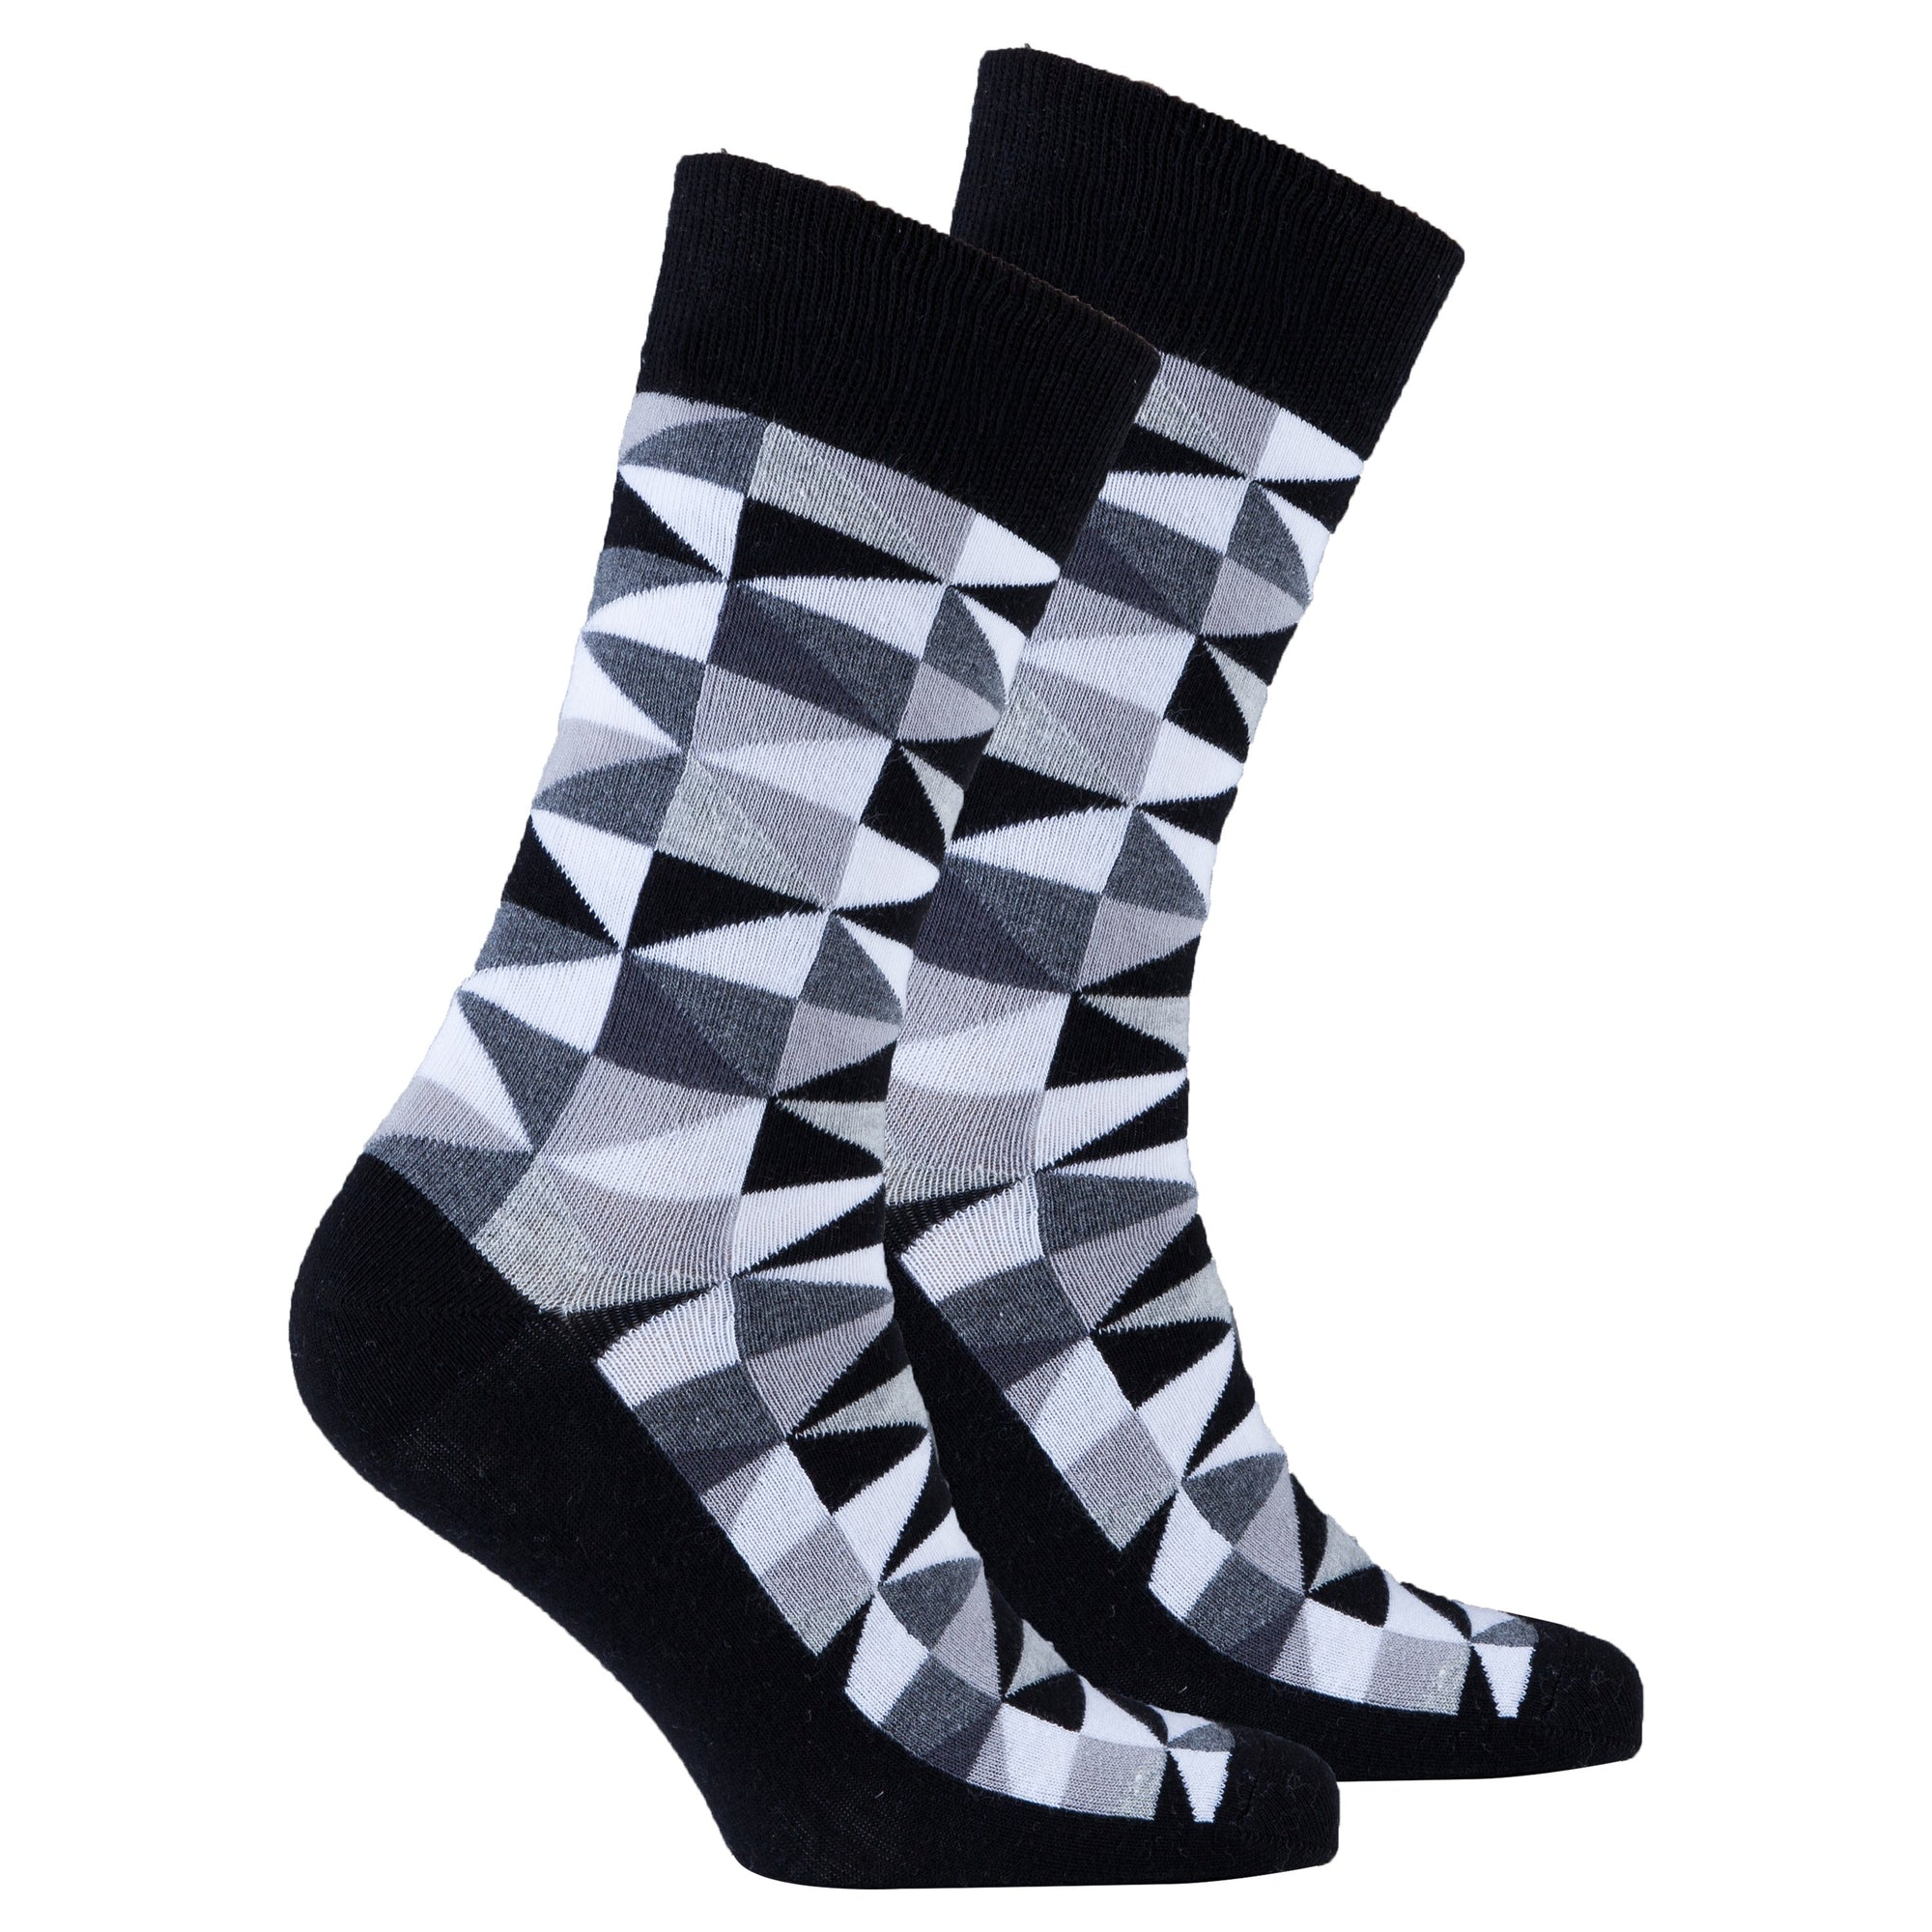 Men's Black Triangle Socks